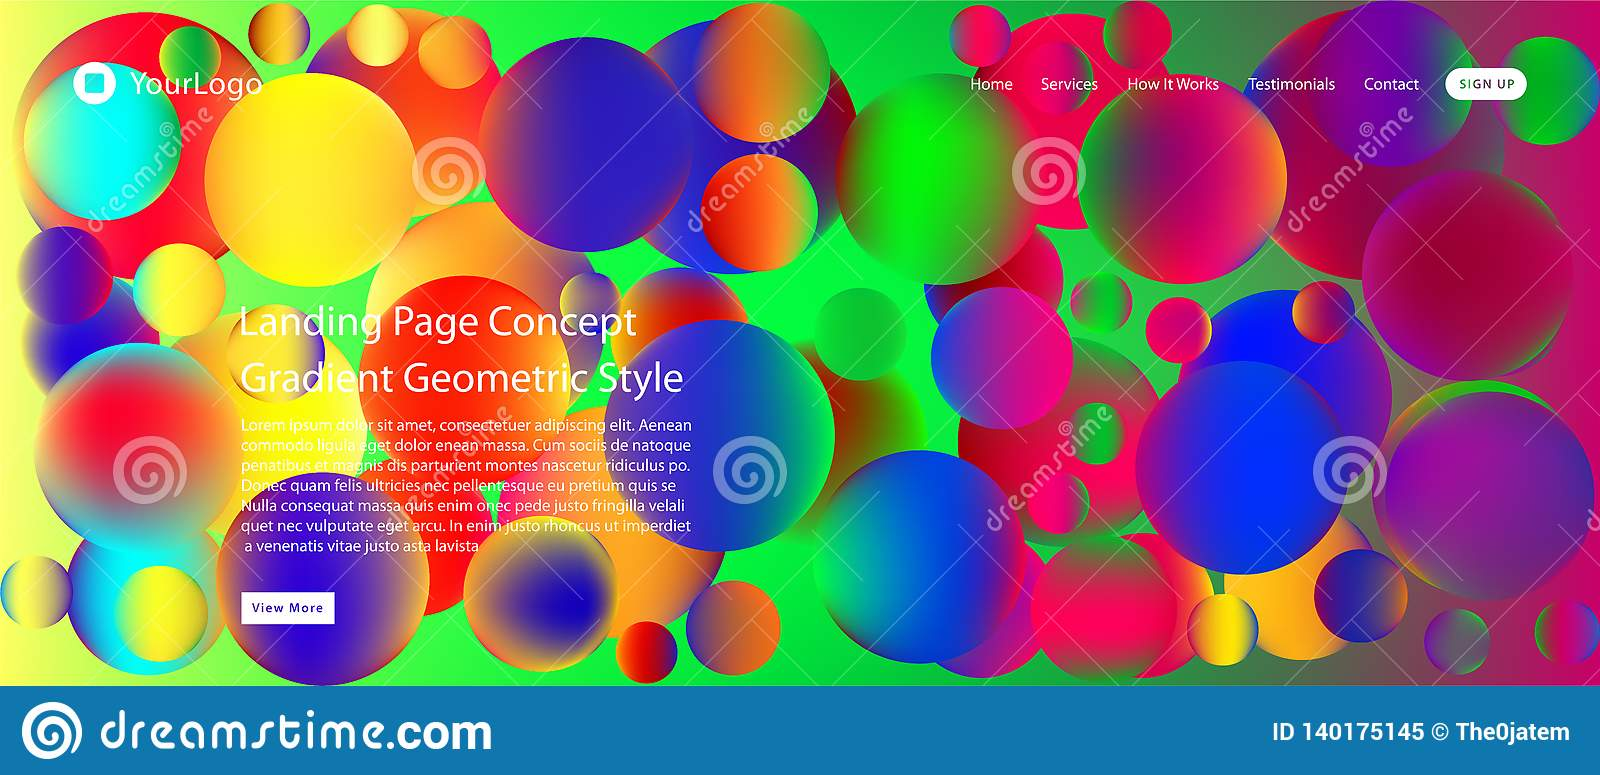 Website or mobile app landing page with illustration of Abstract Colorful Minimal Geometric Pattern Background Design and Gradient